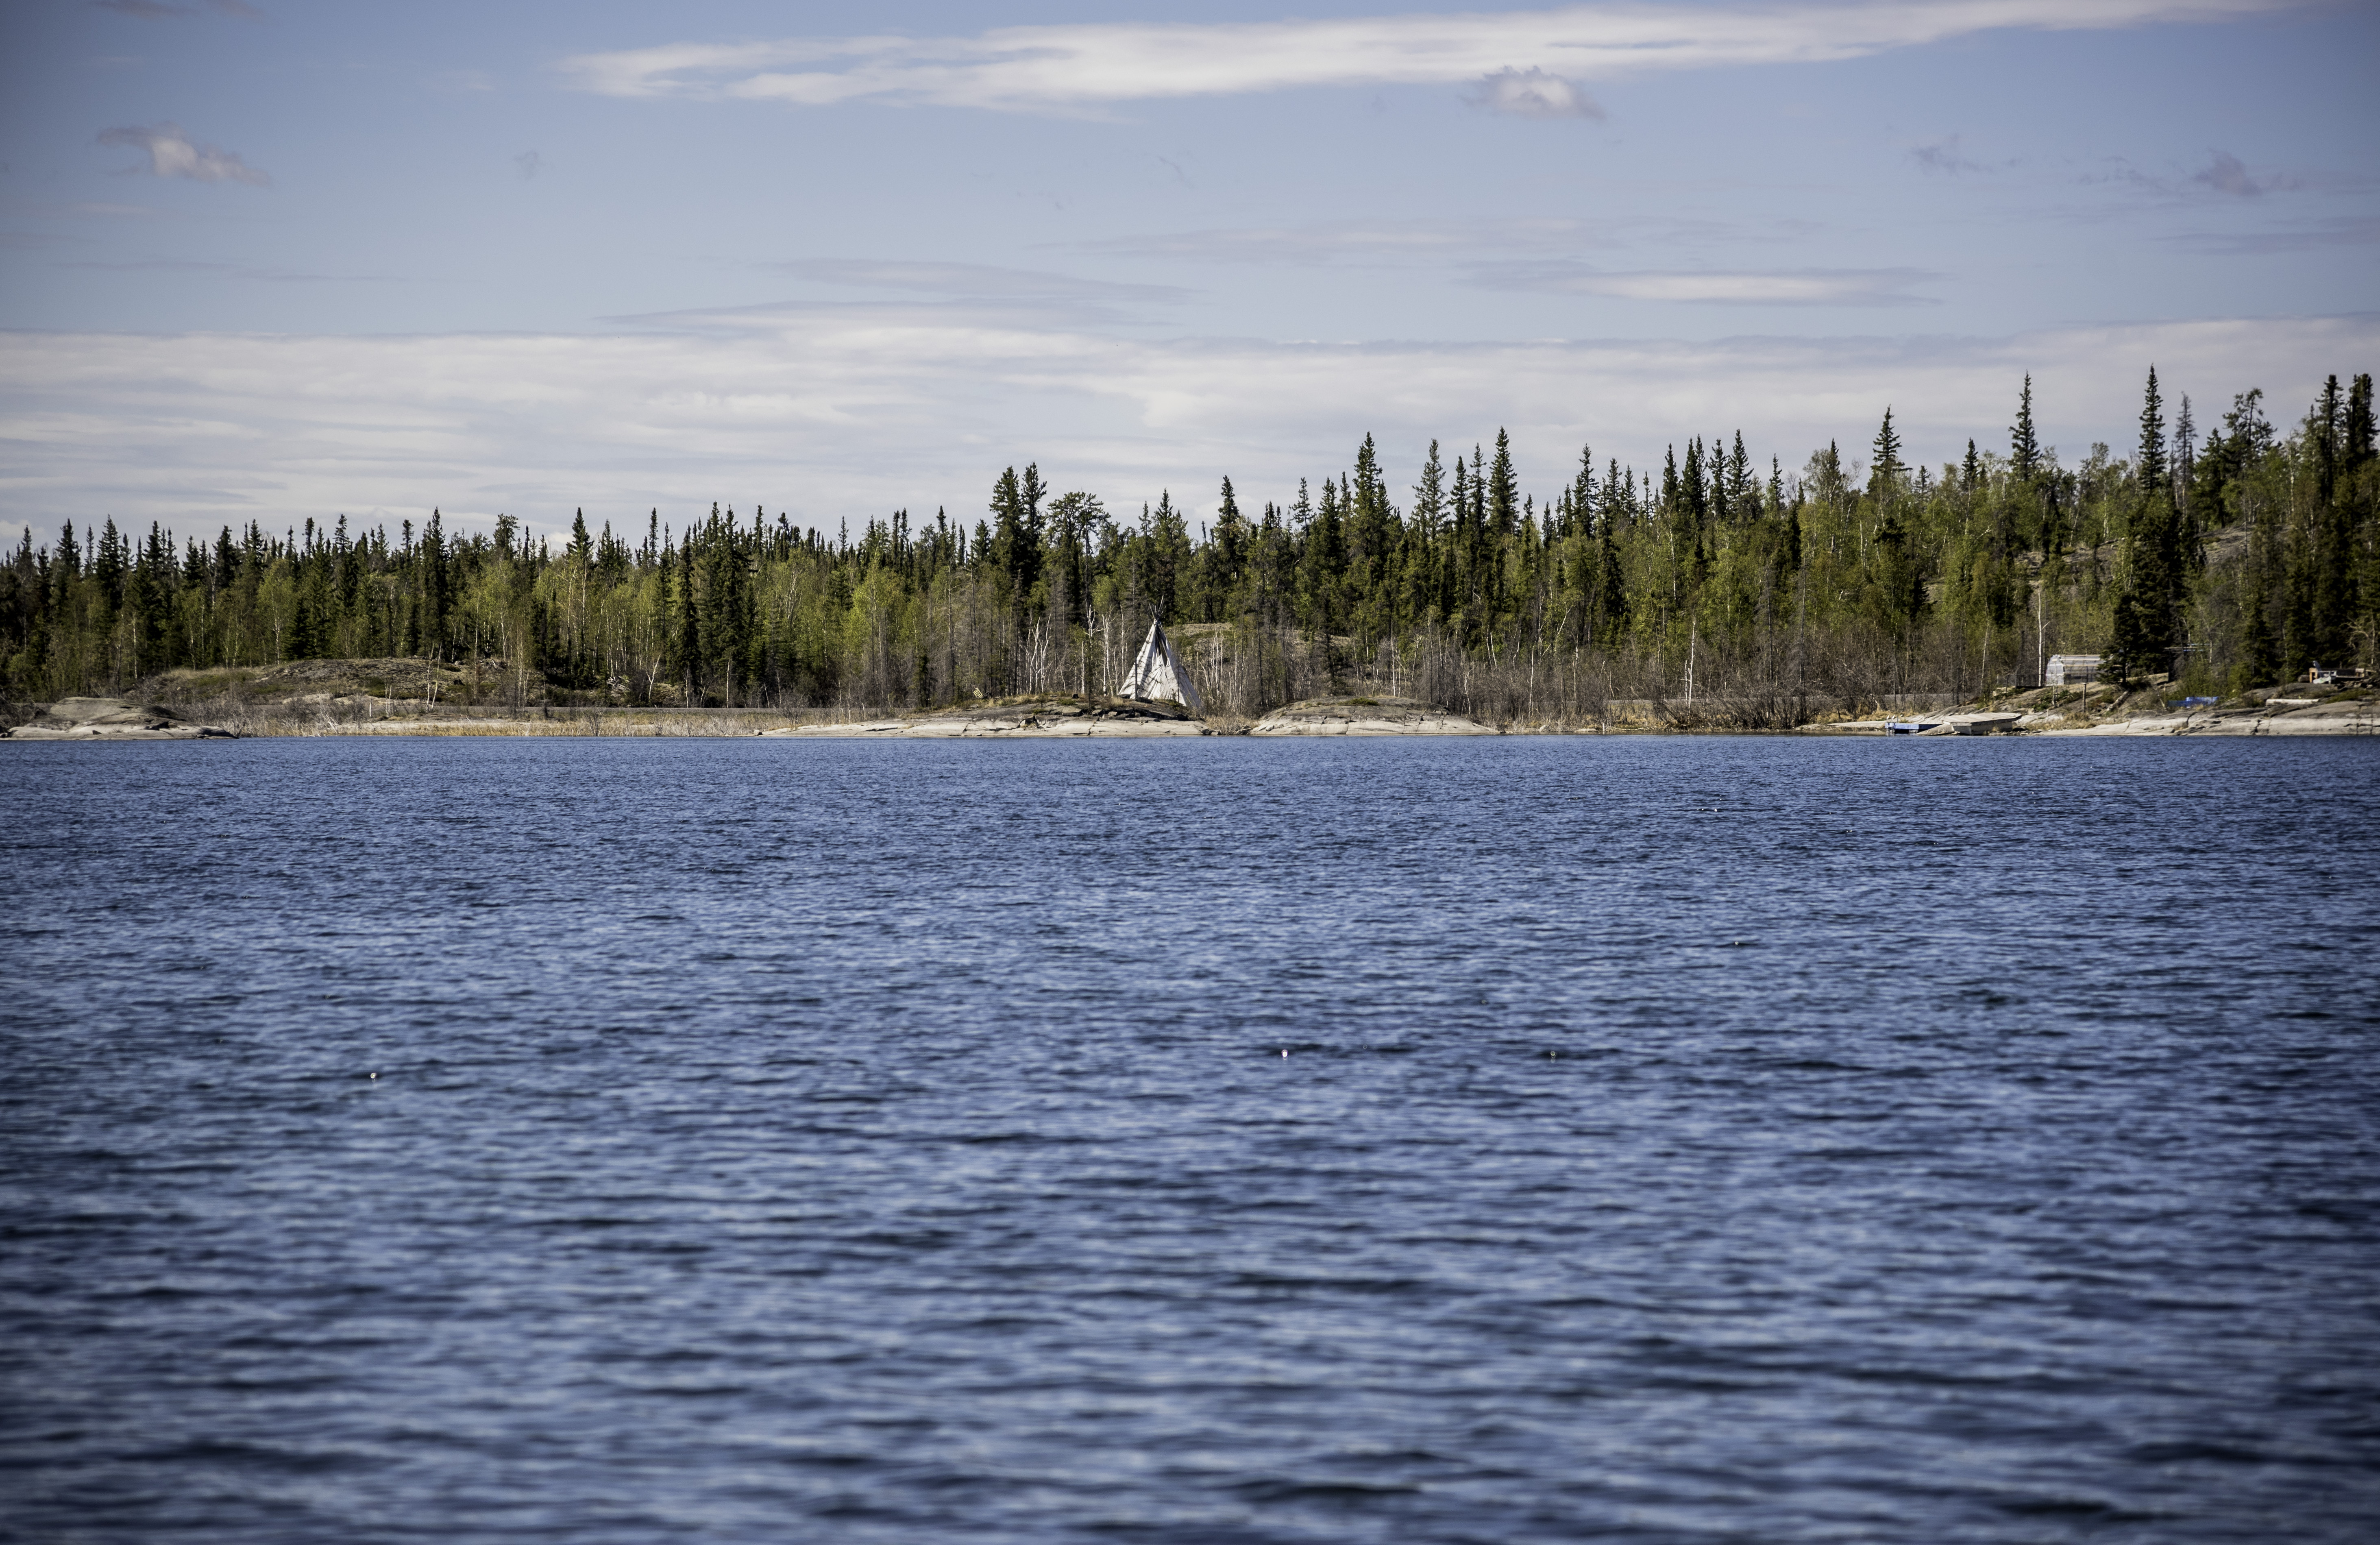 Tent on the other side of the lake on the Ingraham Trail Northwest Territories. & Free Stock Photo of Tent on the other side of the lake on the ...